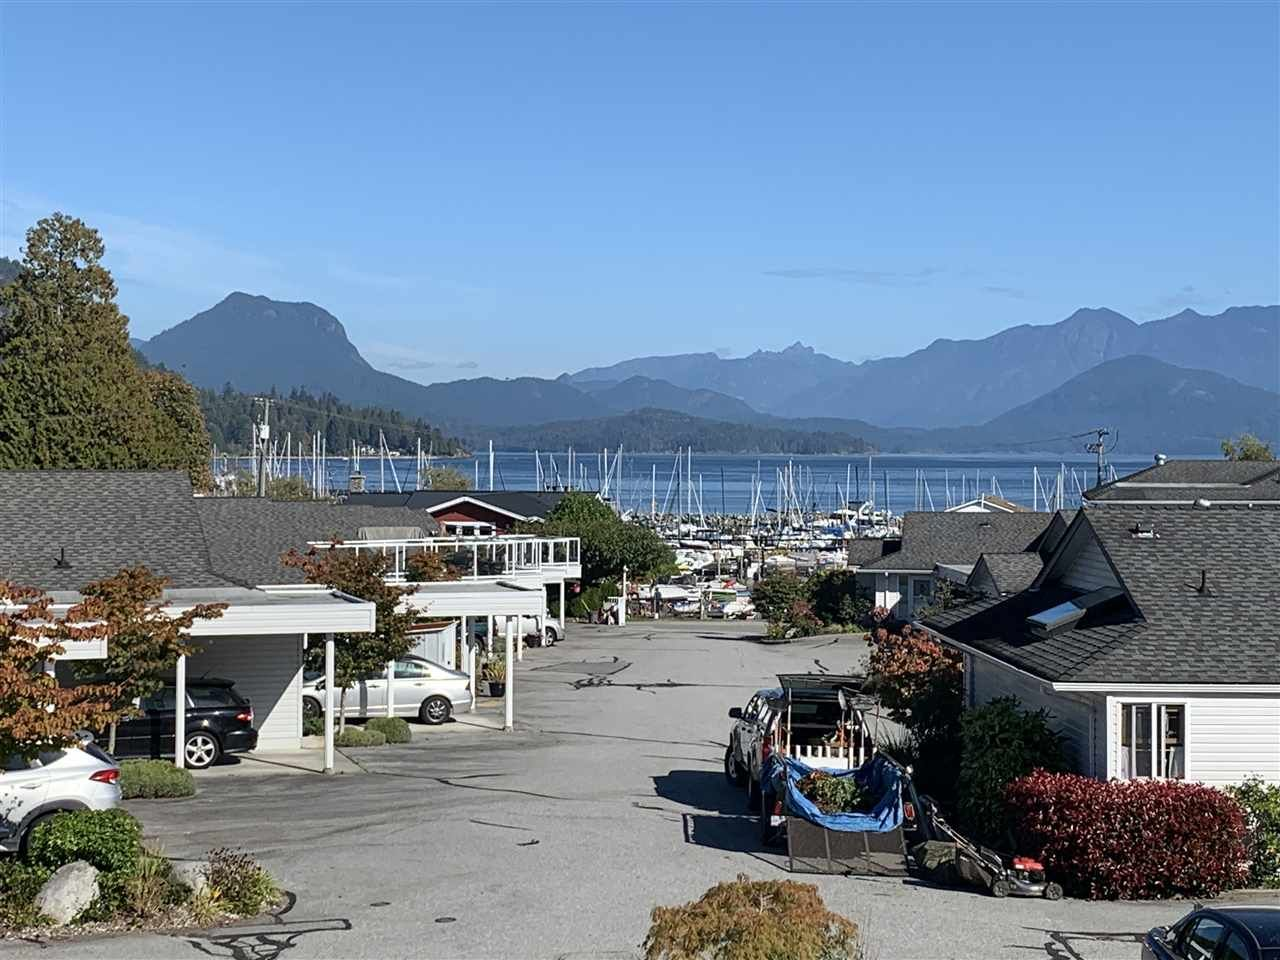 """Main Photo: 38 696 TRUEMAN Road in Gibsons: Gibsons & Area Condo for sale in """"Marina Place"""" (Sunshine Coast)  : MLS®# R2507629"""